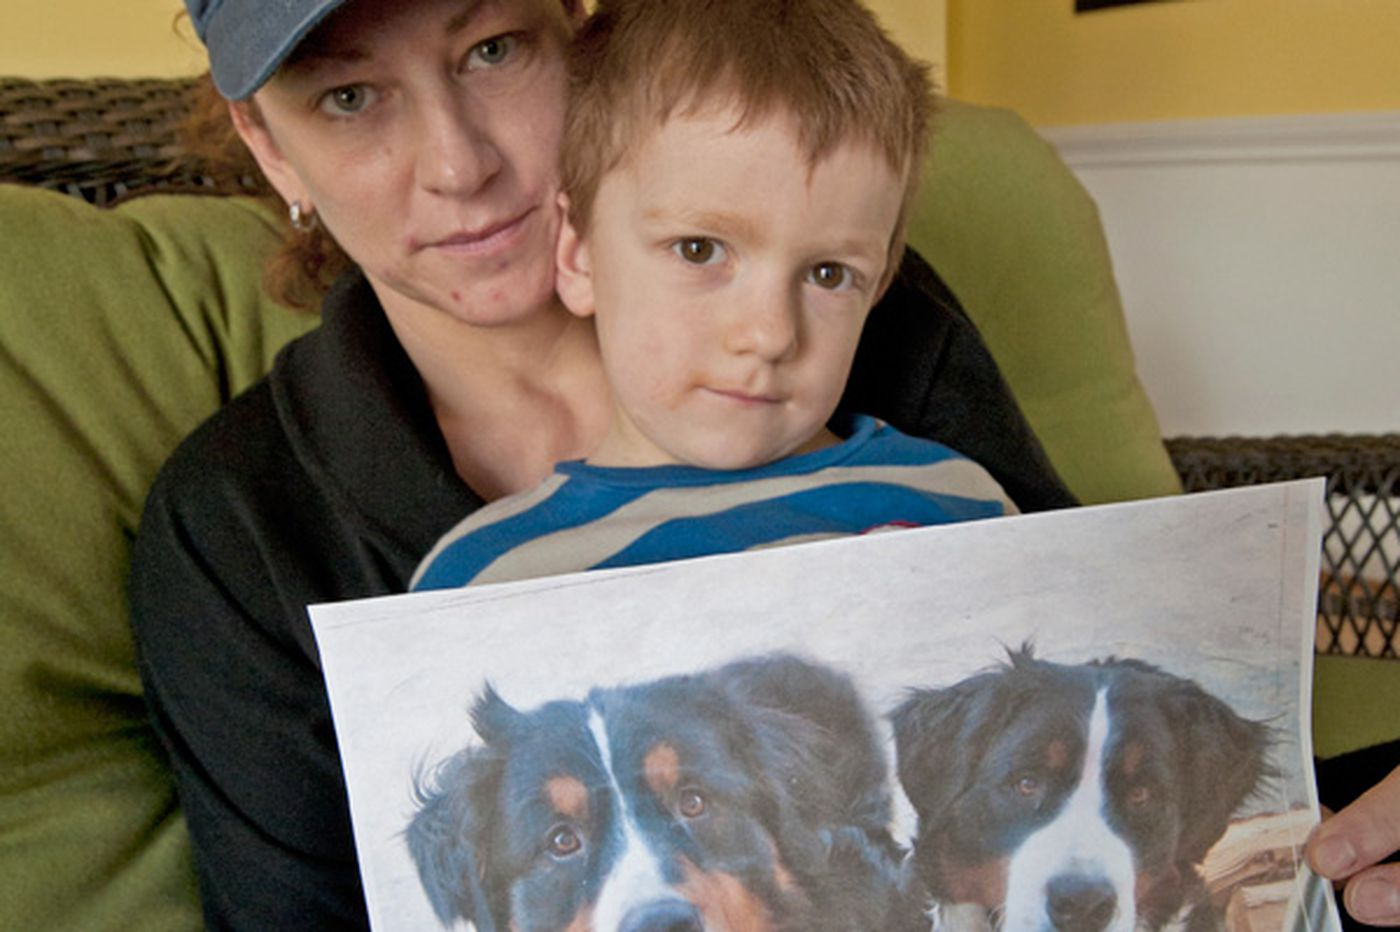 Shooting of dogs sparks ill will in Chester Springs